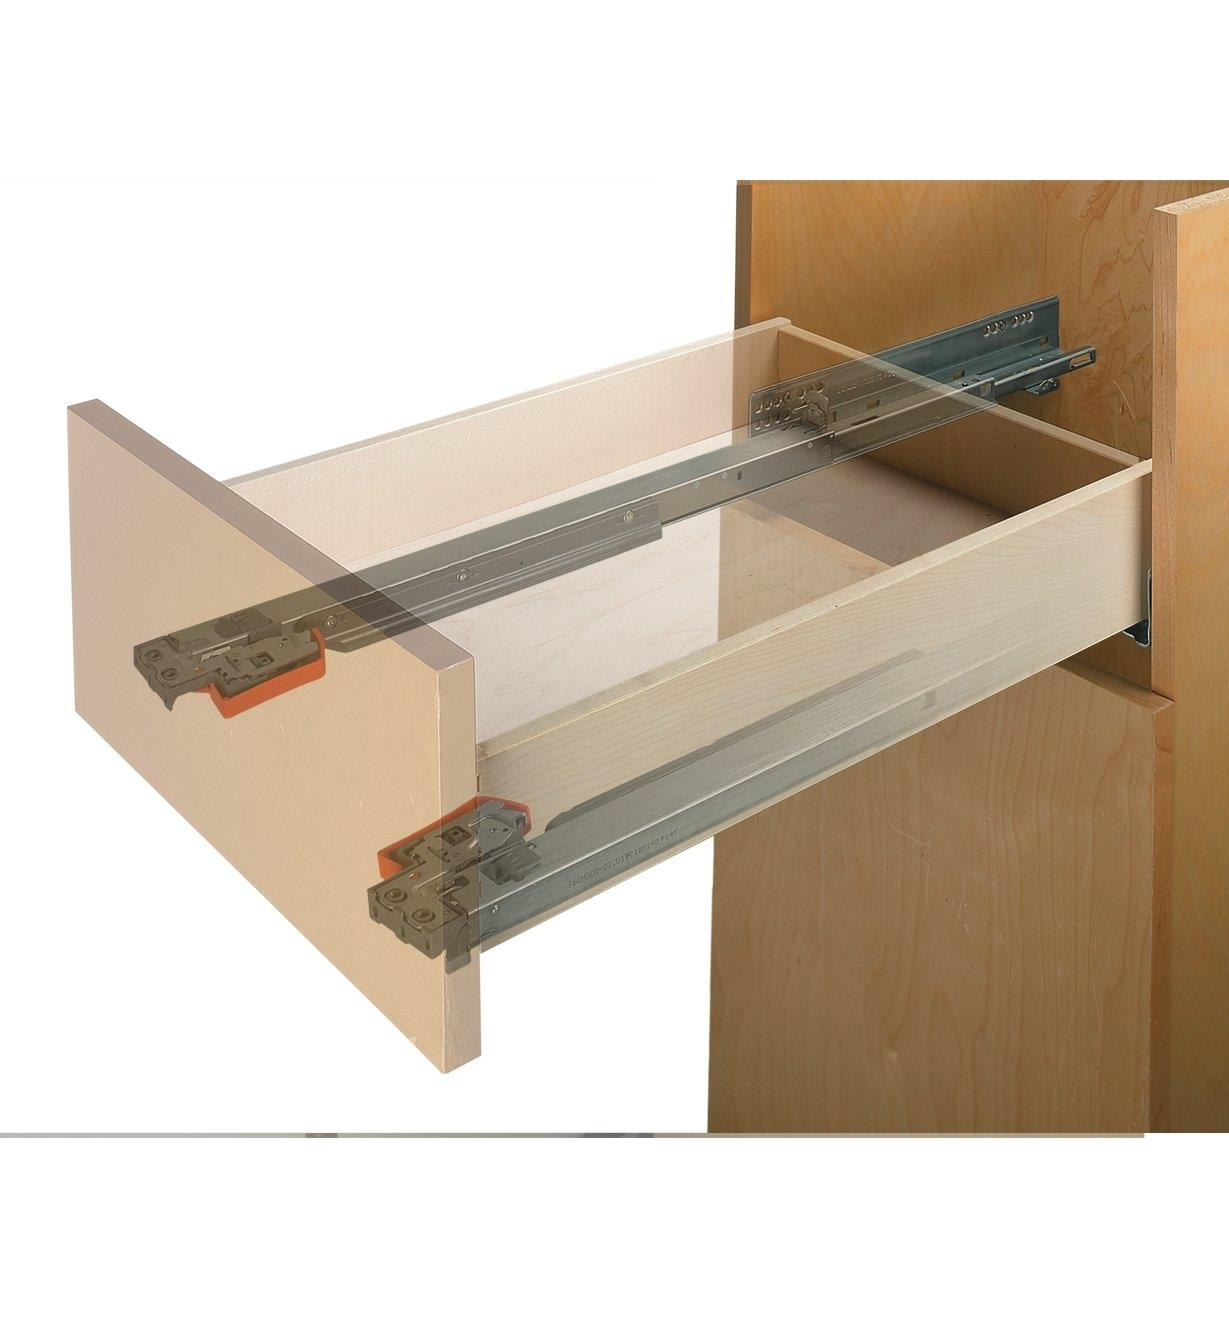 Example of Blum Movento slides installed in a cabinet drawer